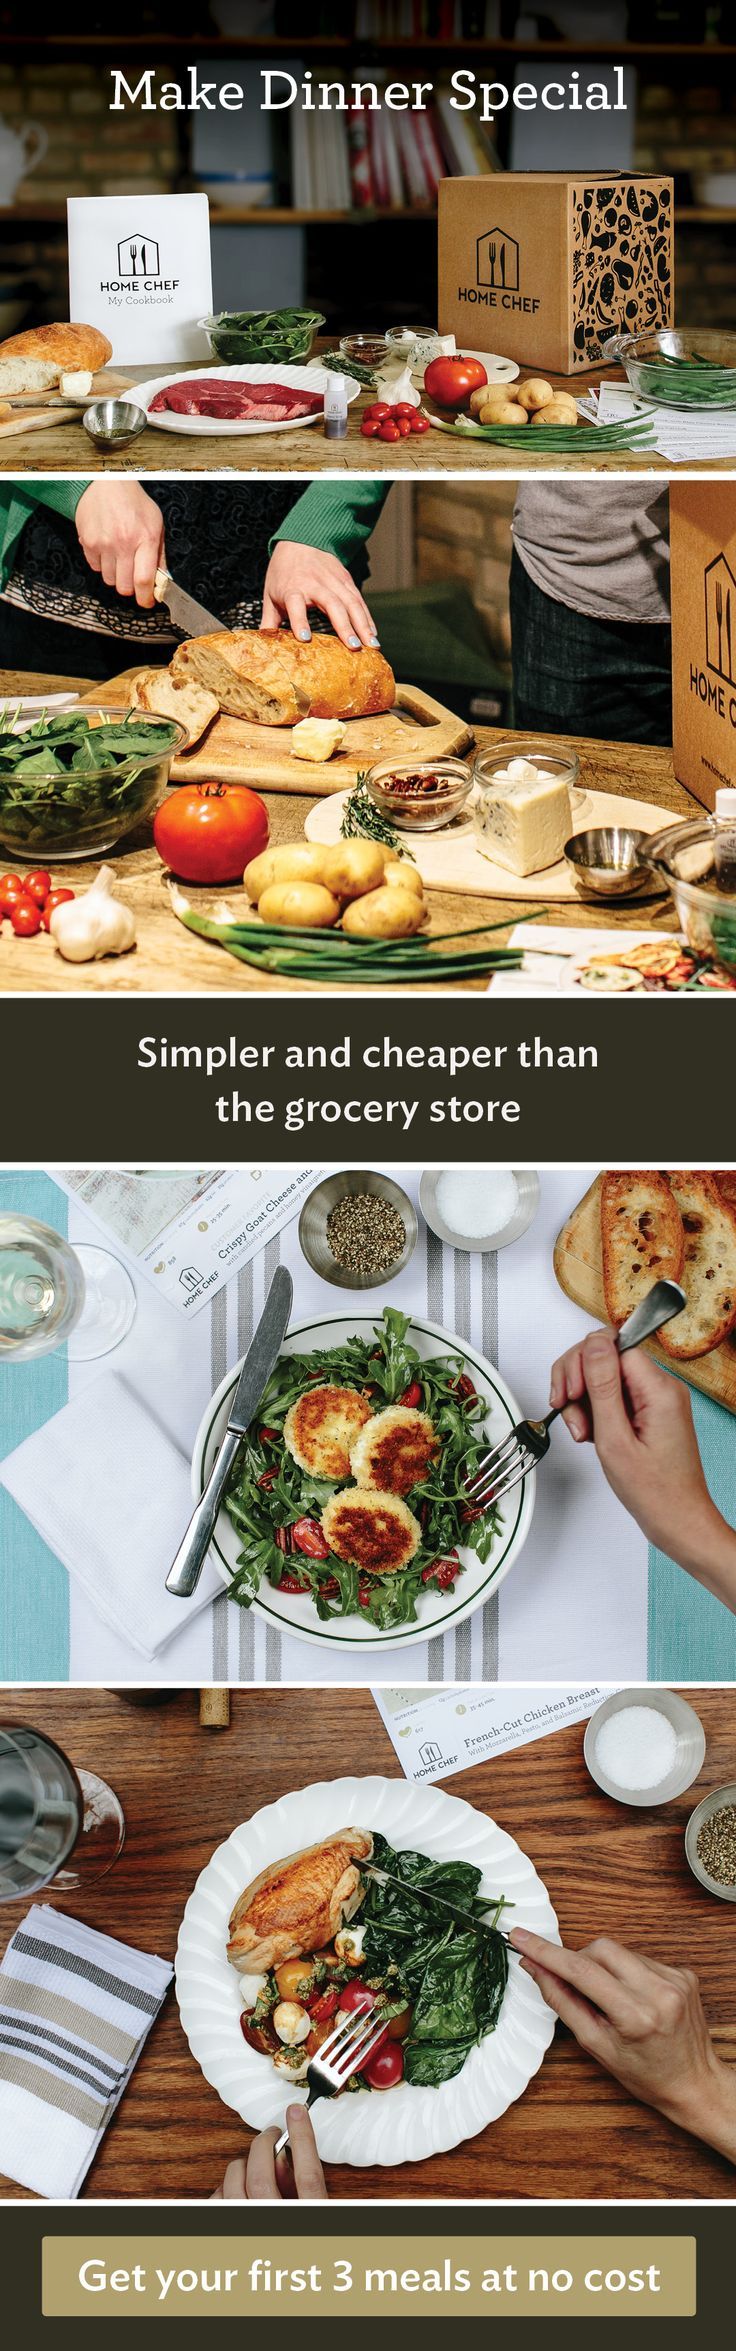 Blue apron vs grocery shopping - Skip The Grocery Store And Meal Planning Headaches And Make Amazing Home Cooked Meals Effortlessly